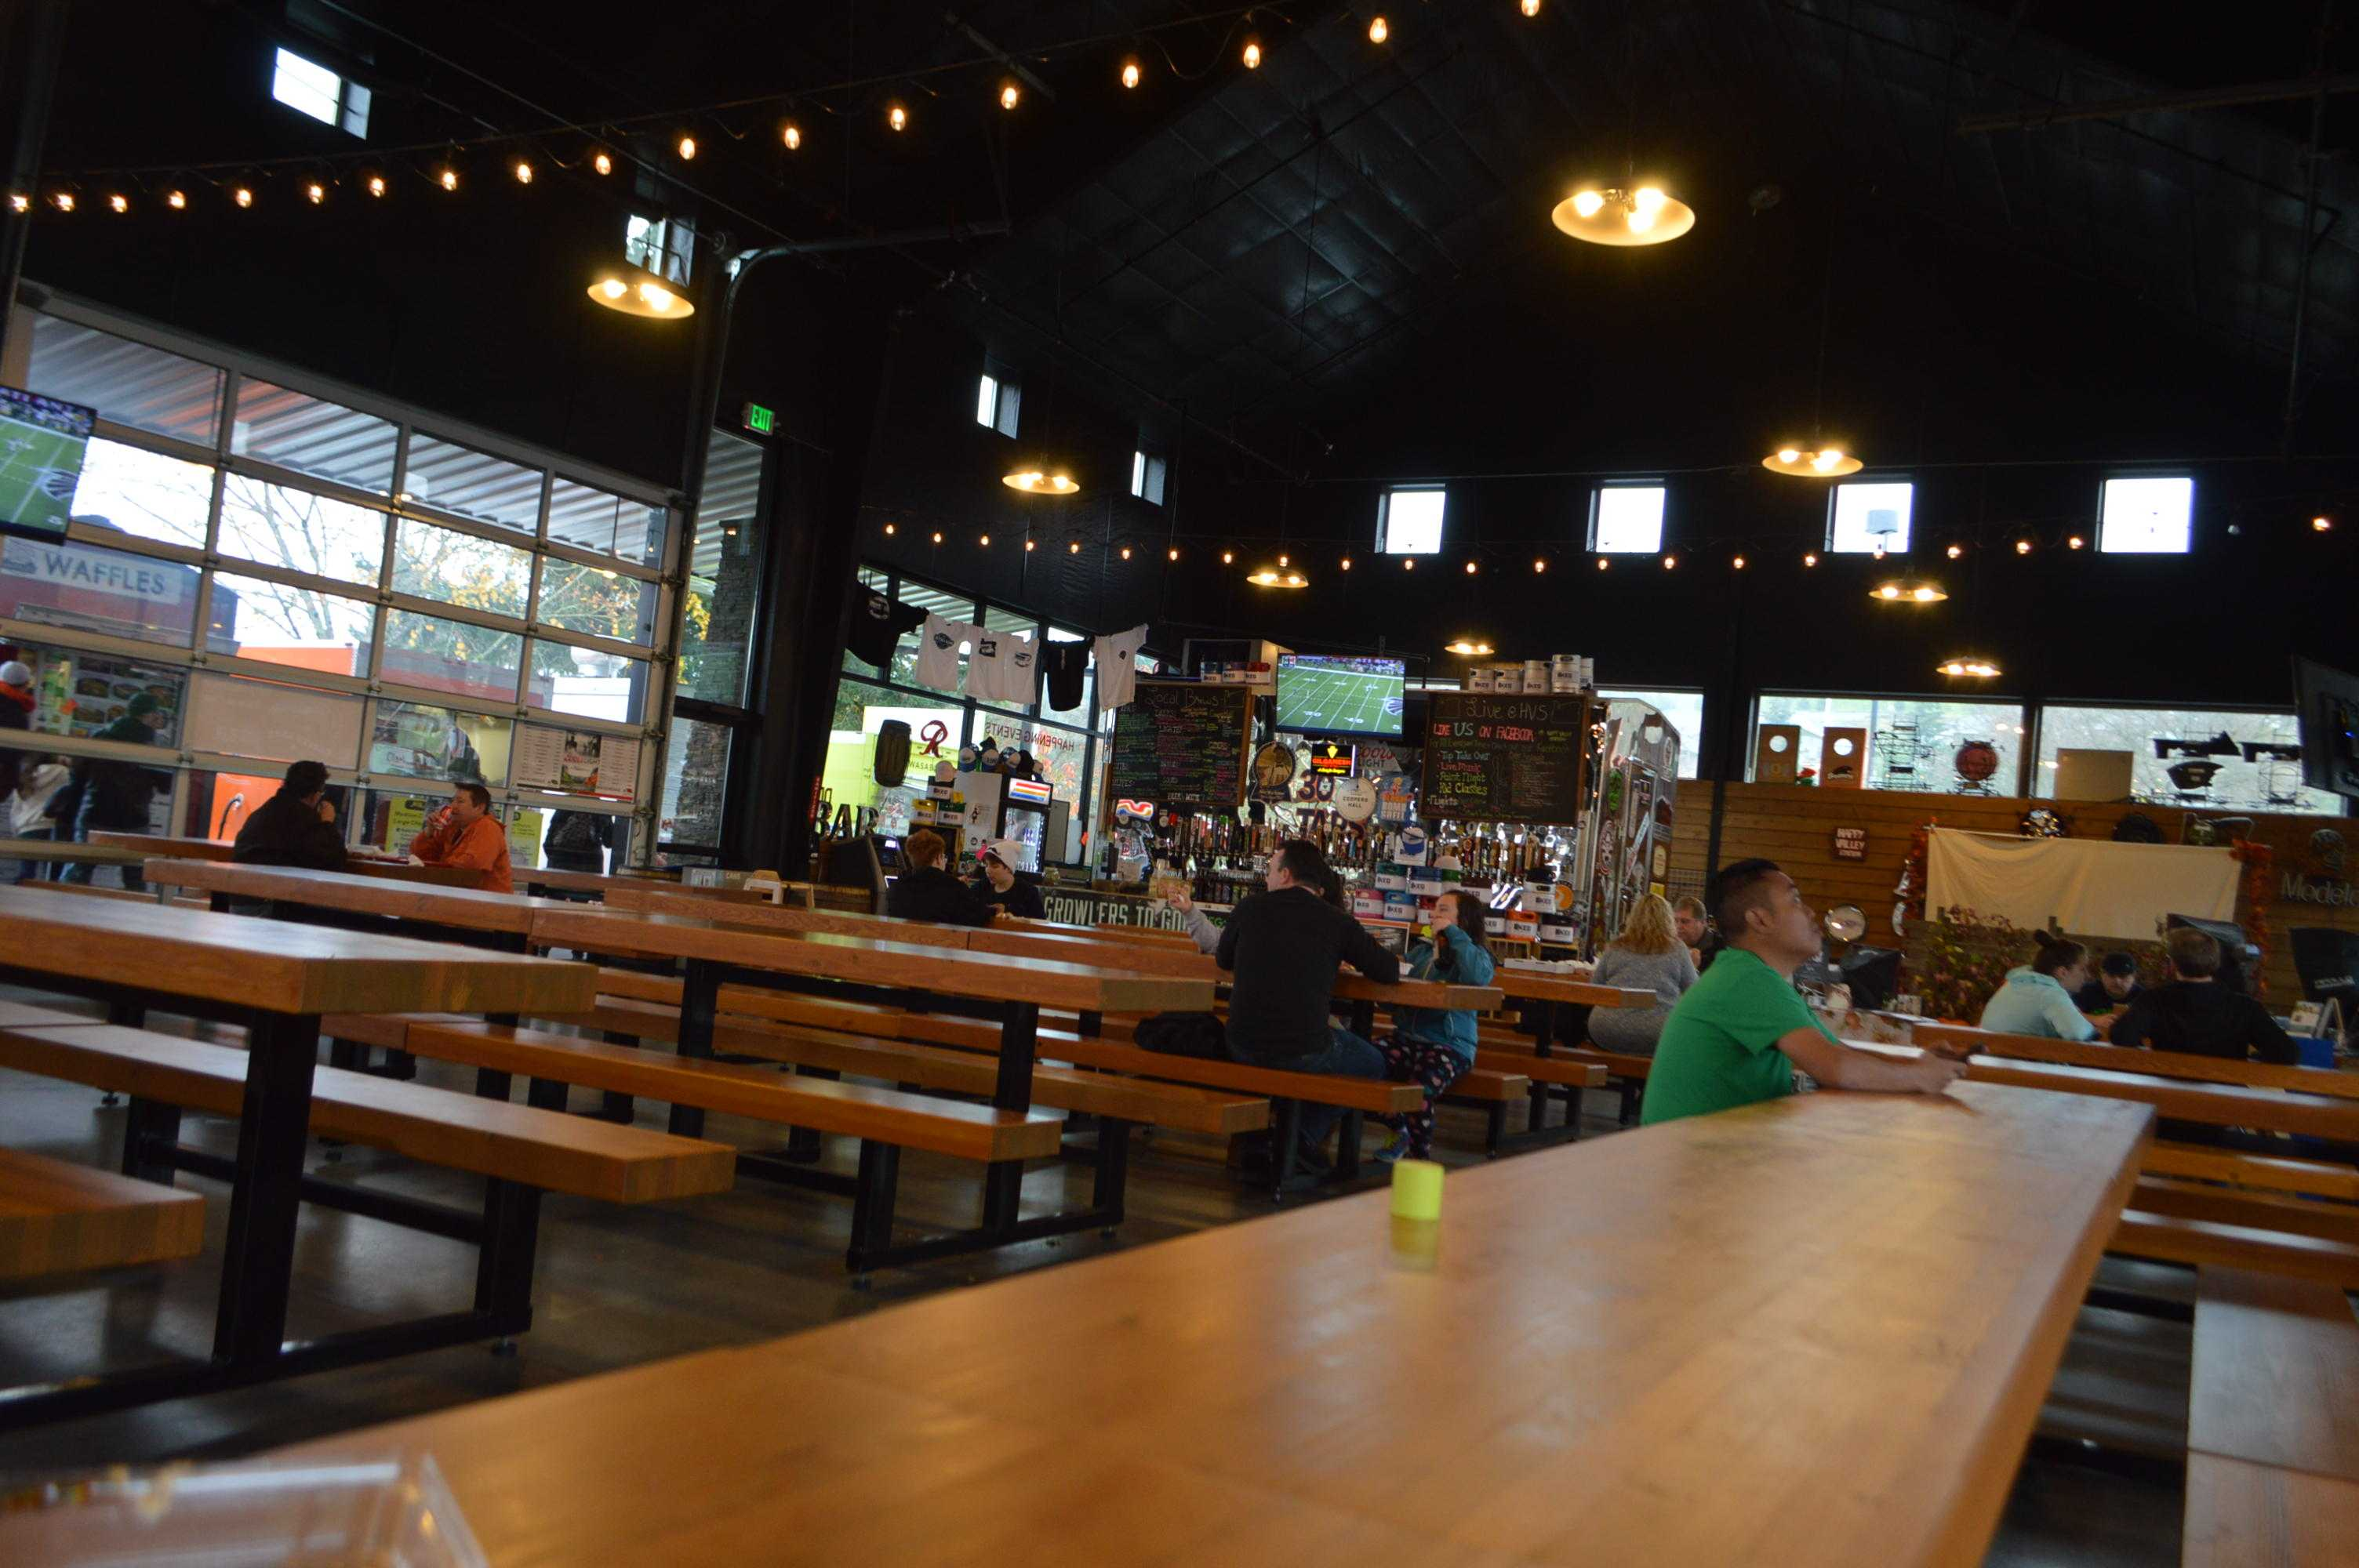 Inside+seating+area+at+the+Happy+Valley+food+carts